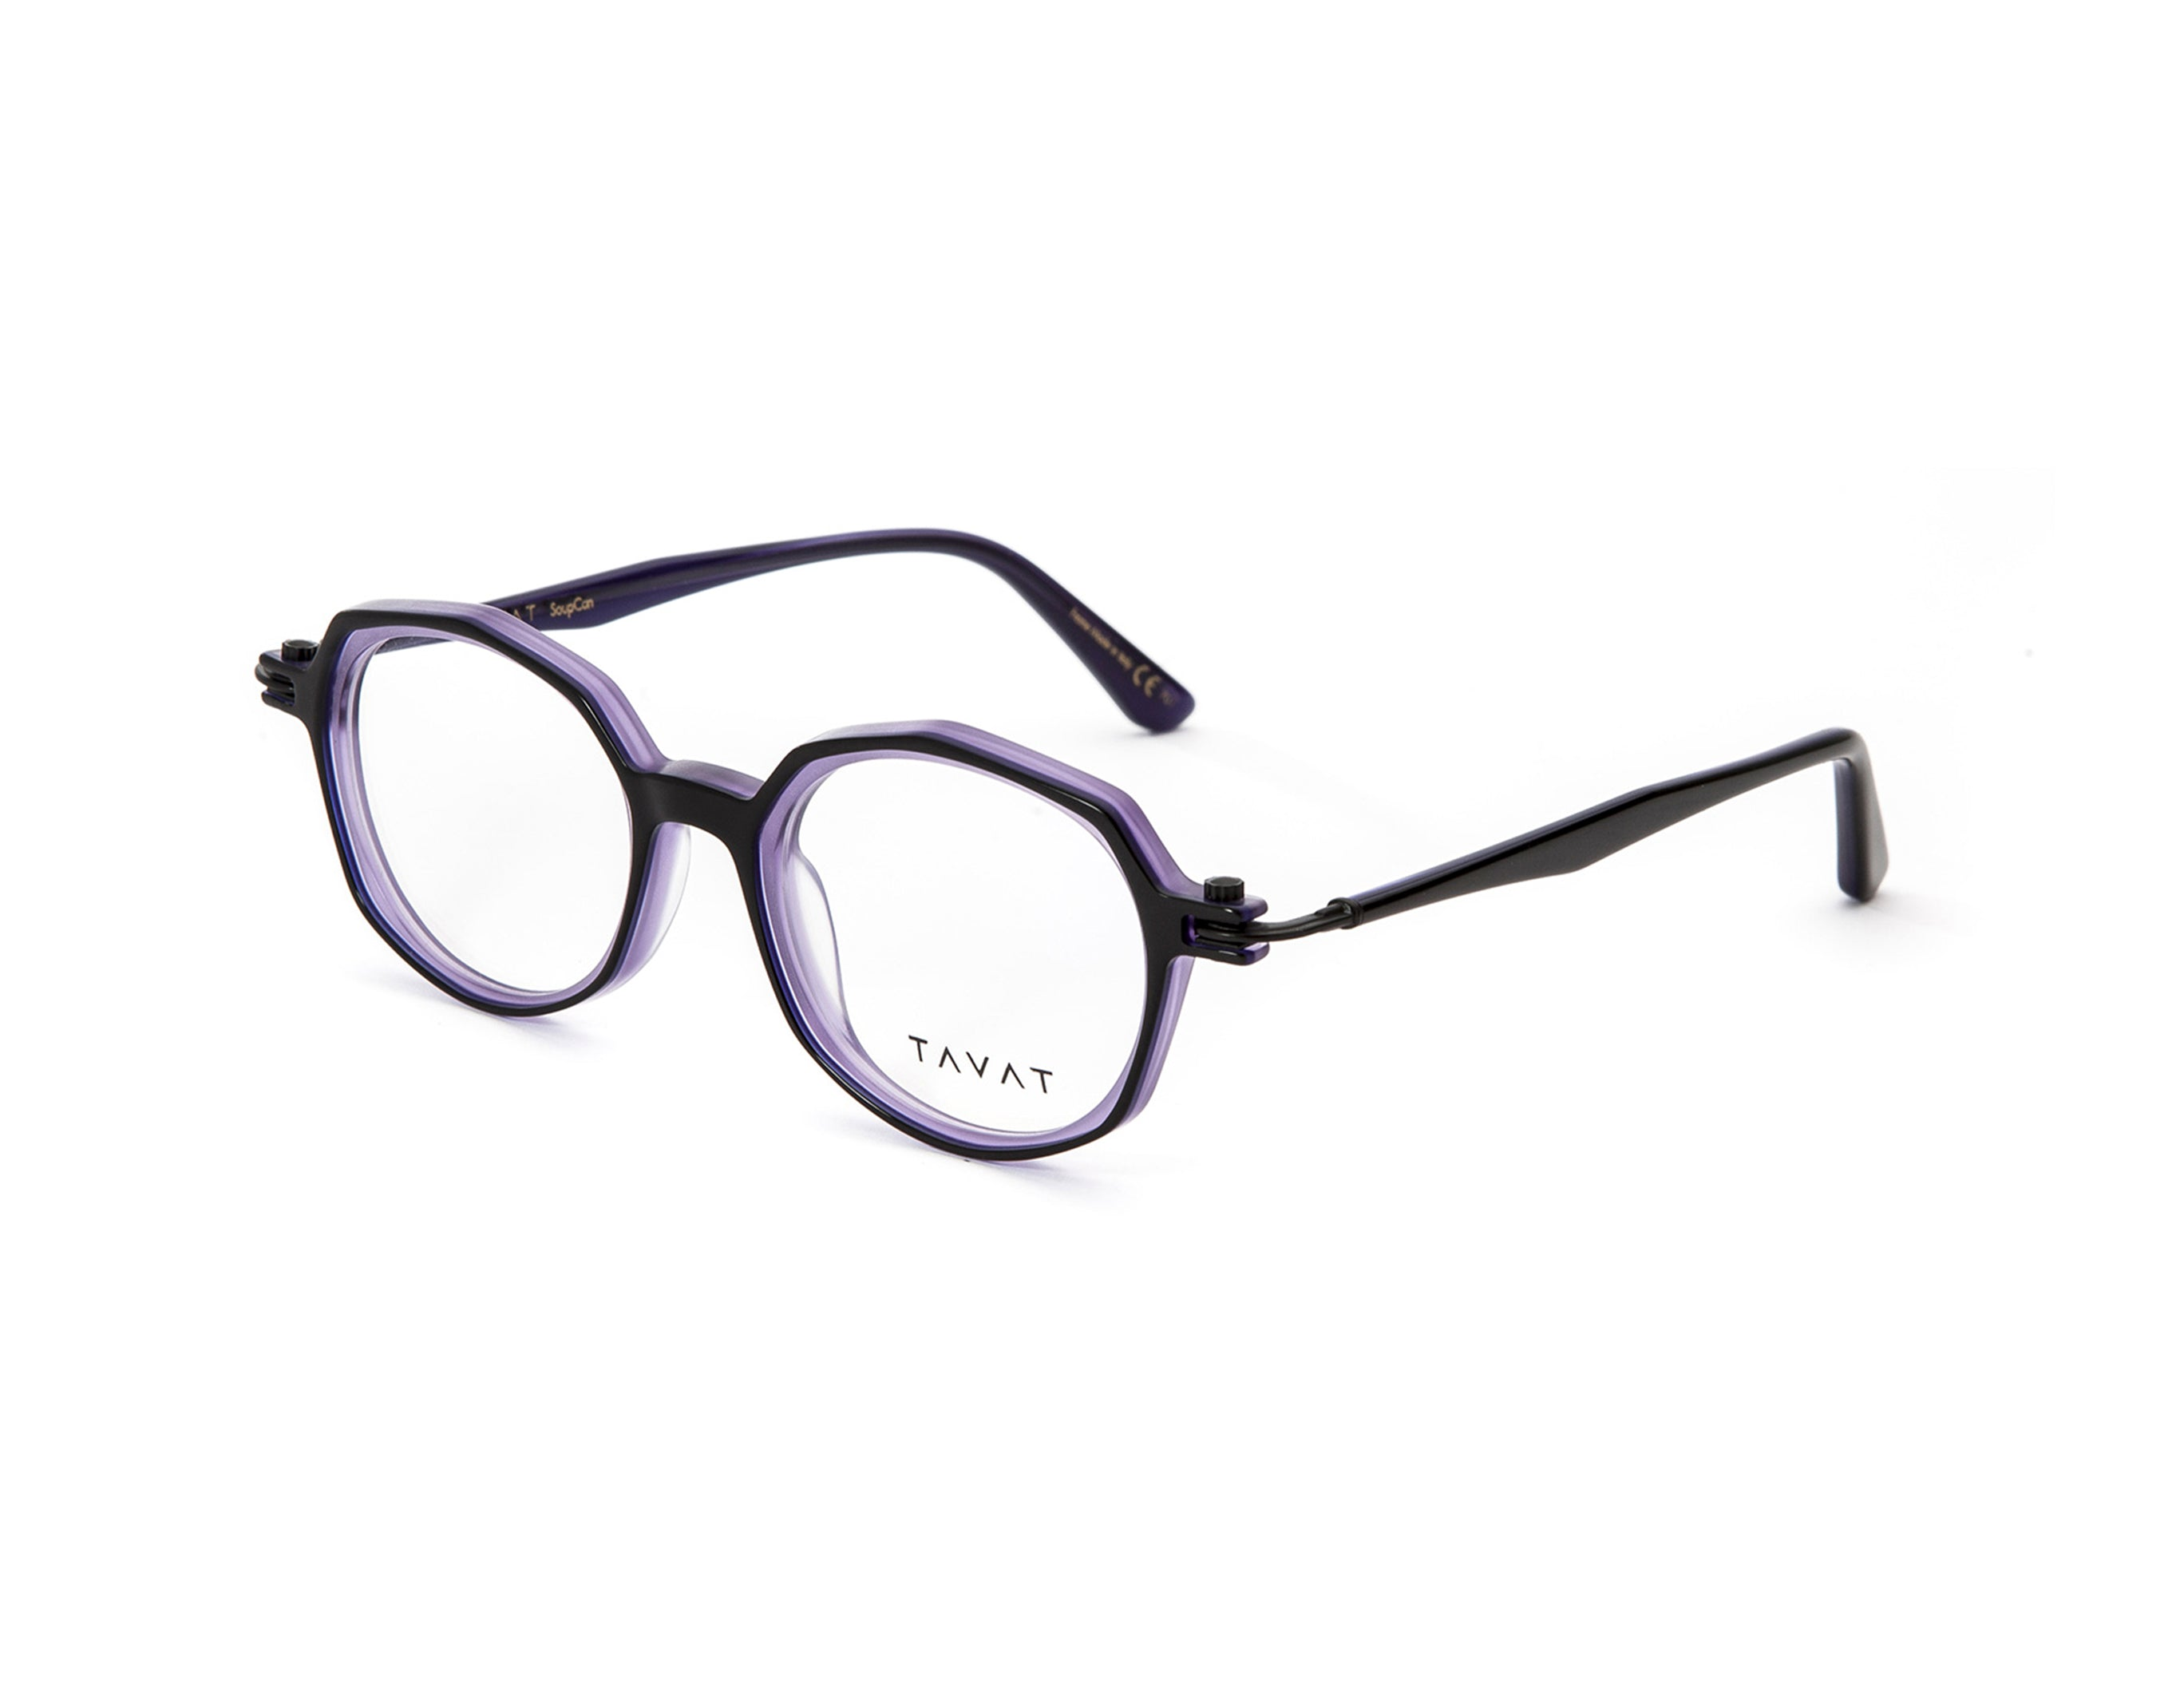 Tavat - Bi-Ellipse-SC034-Black Purple